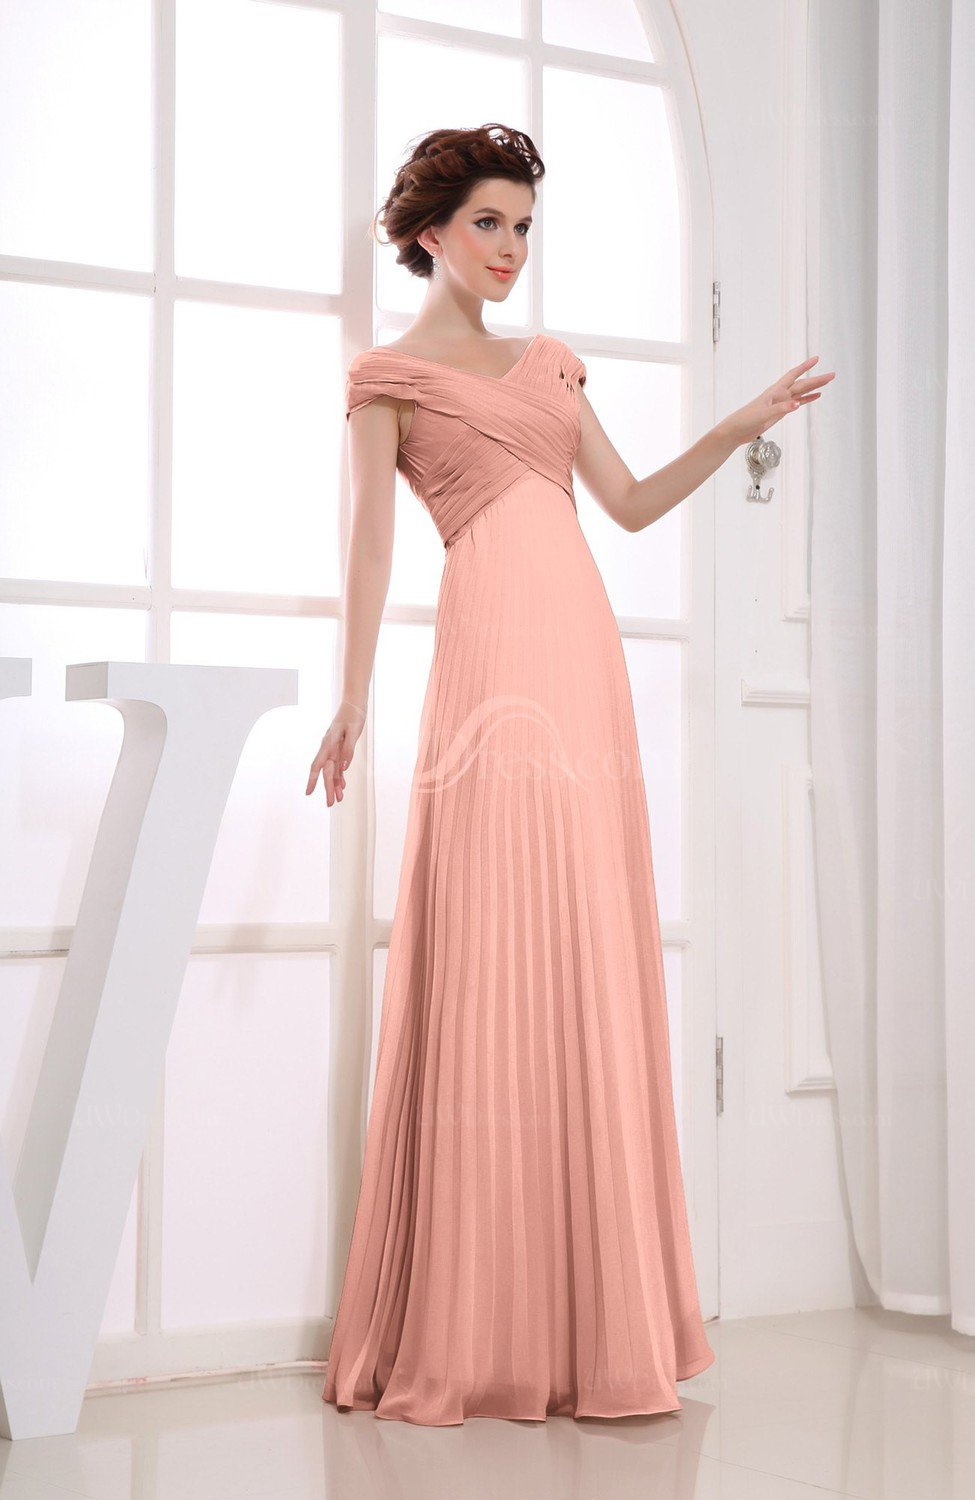 Peach Vintage Empire Short Sleeve Zipper Chiffon Floor Length Bridesmaid Dresses